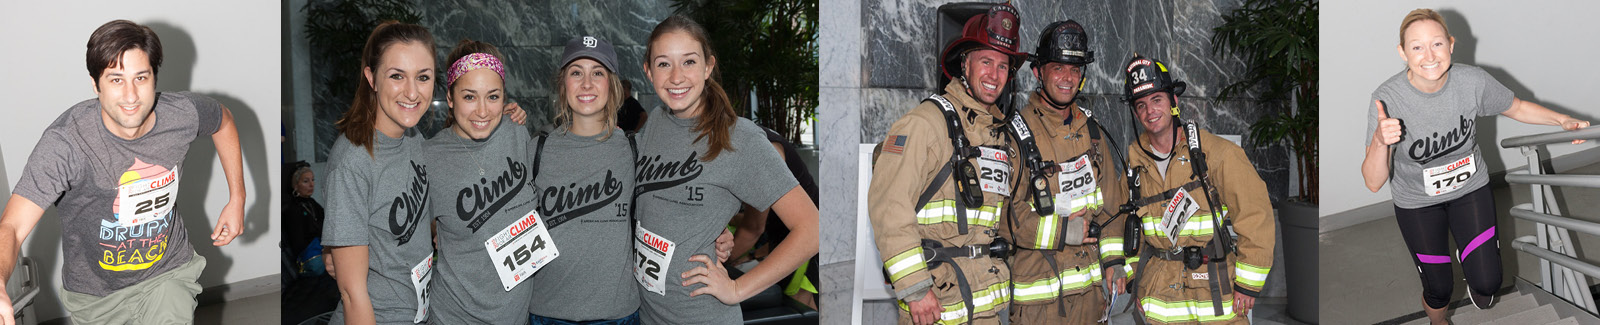 Fight For Air Climb - San Diego. Step Up to the Challenge!